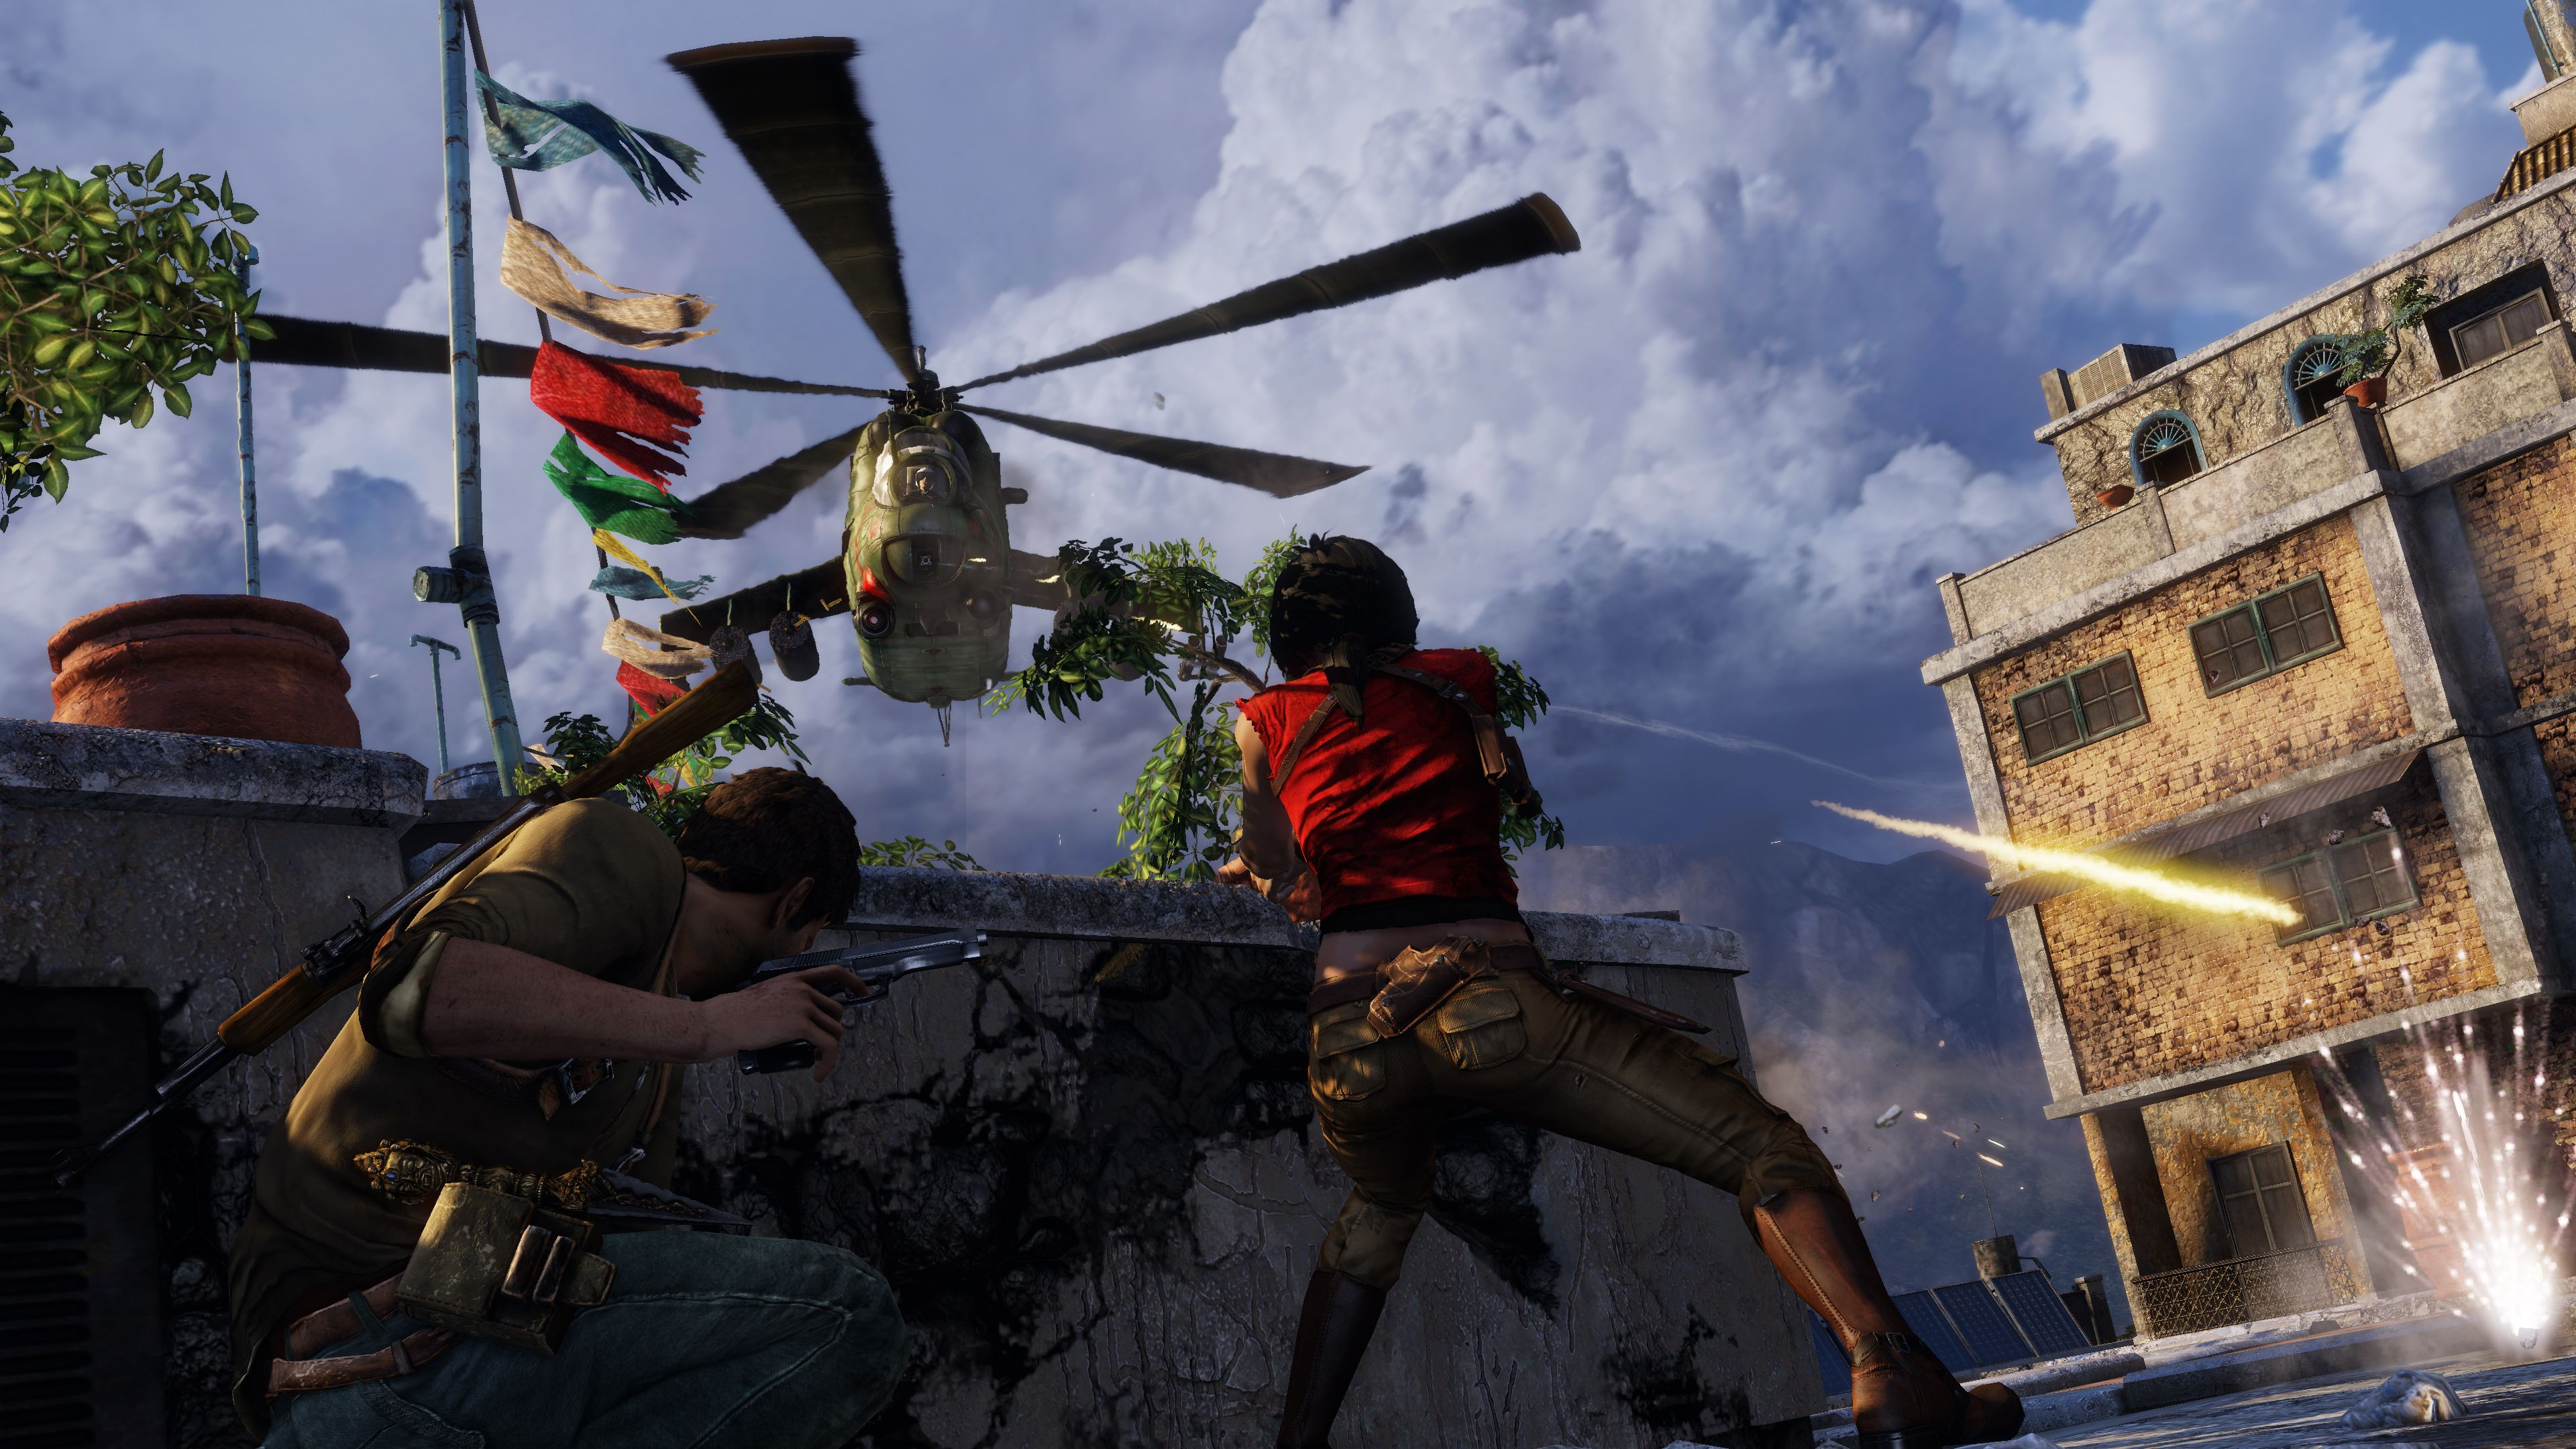 Uncharted_2_UNDC_Warzone_Demo_Chloe_Helicopter_14365282491